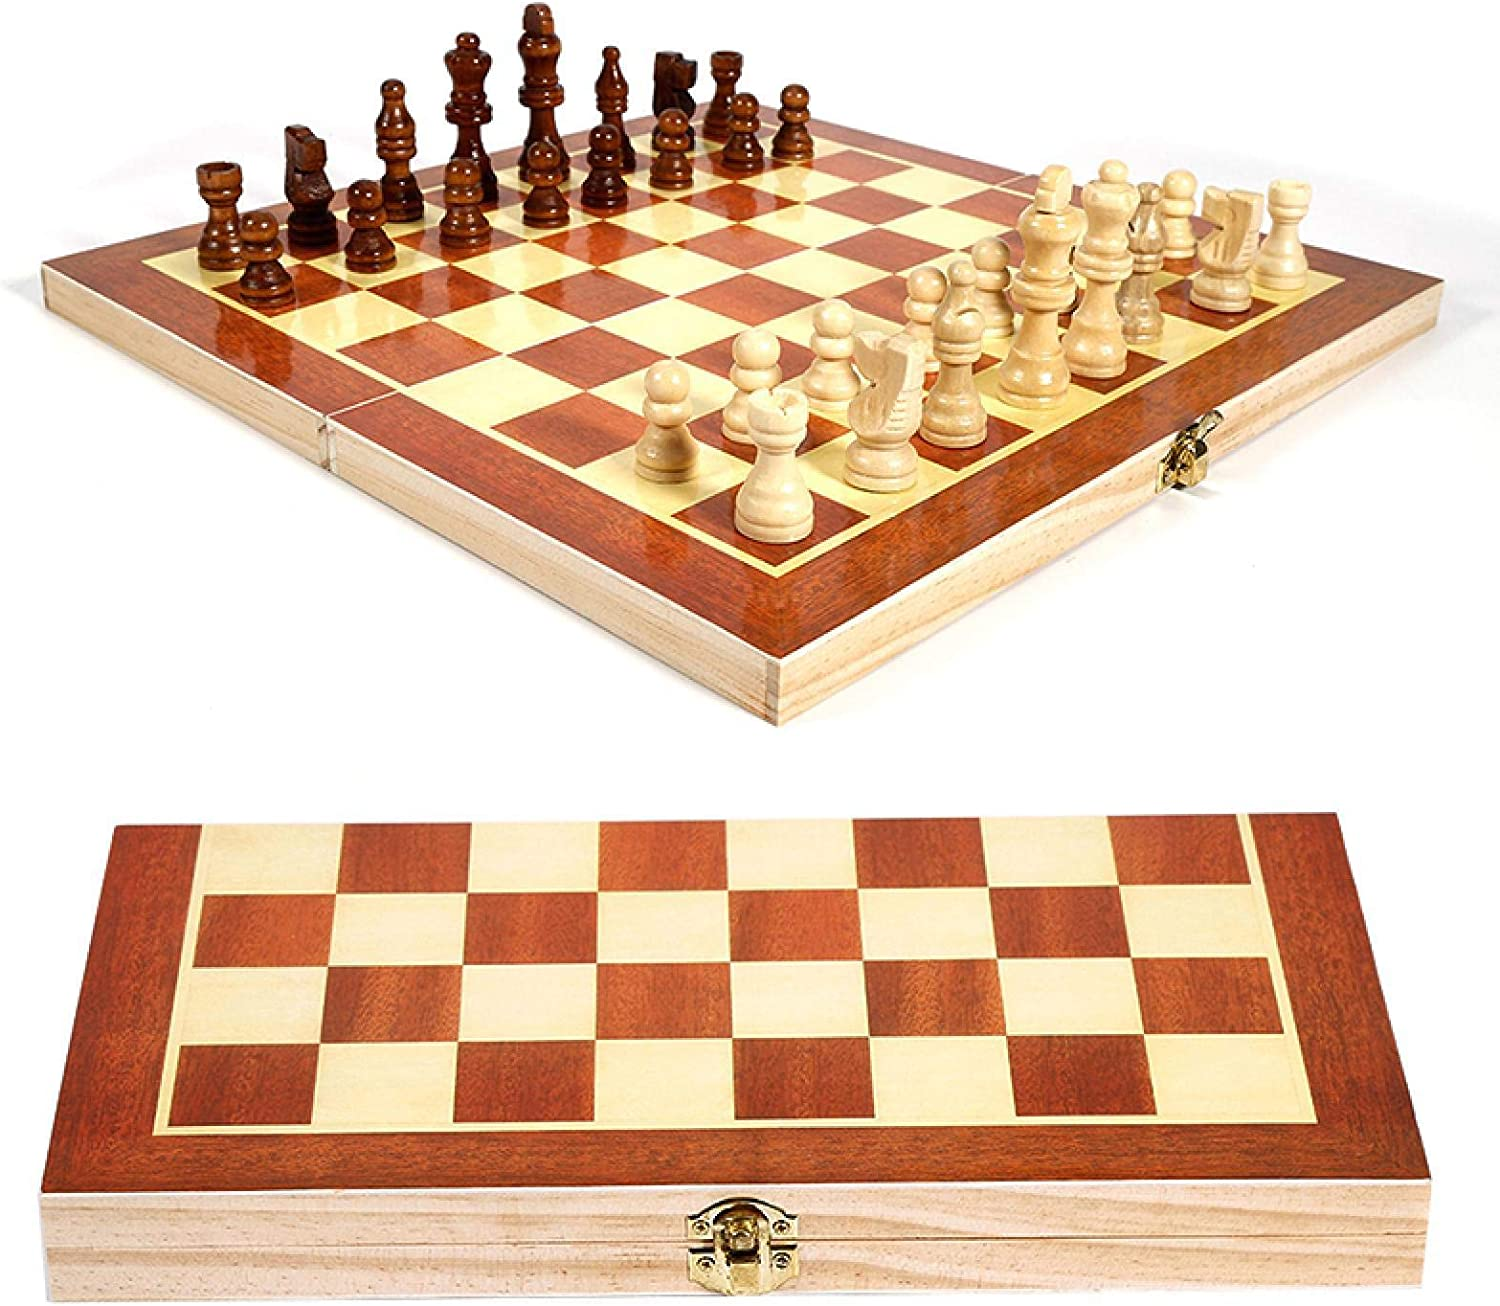 YEYUTF Wooden Chess Set Foldable Tampa Mall Board Time sale for Game